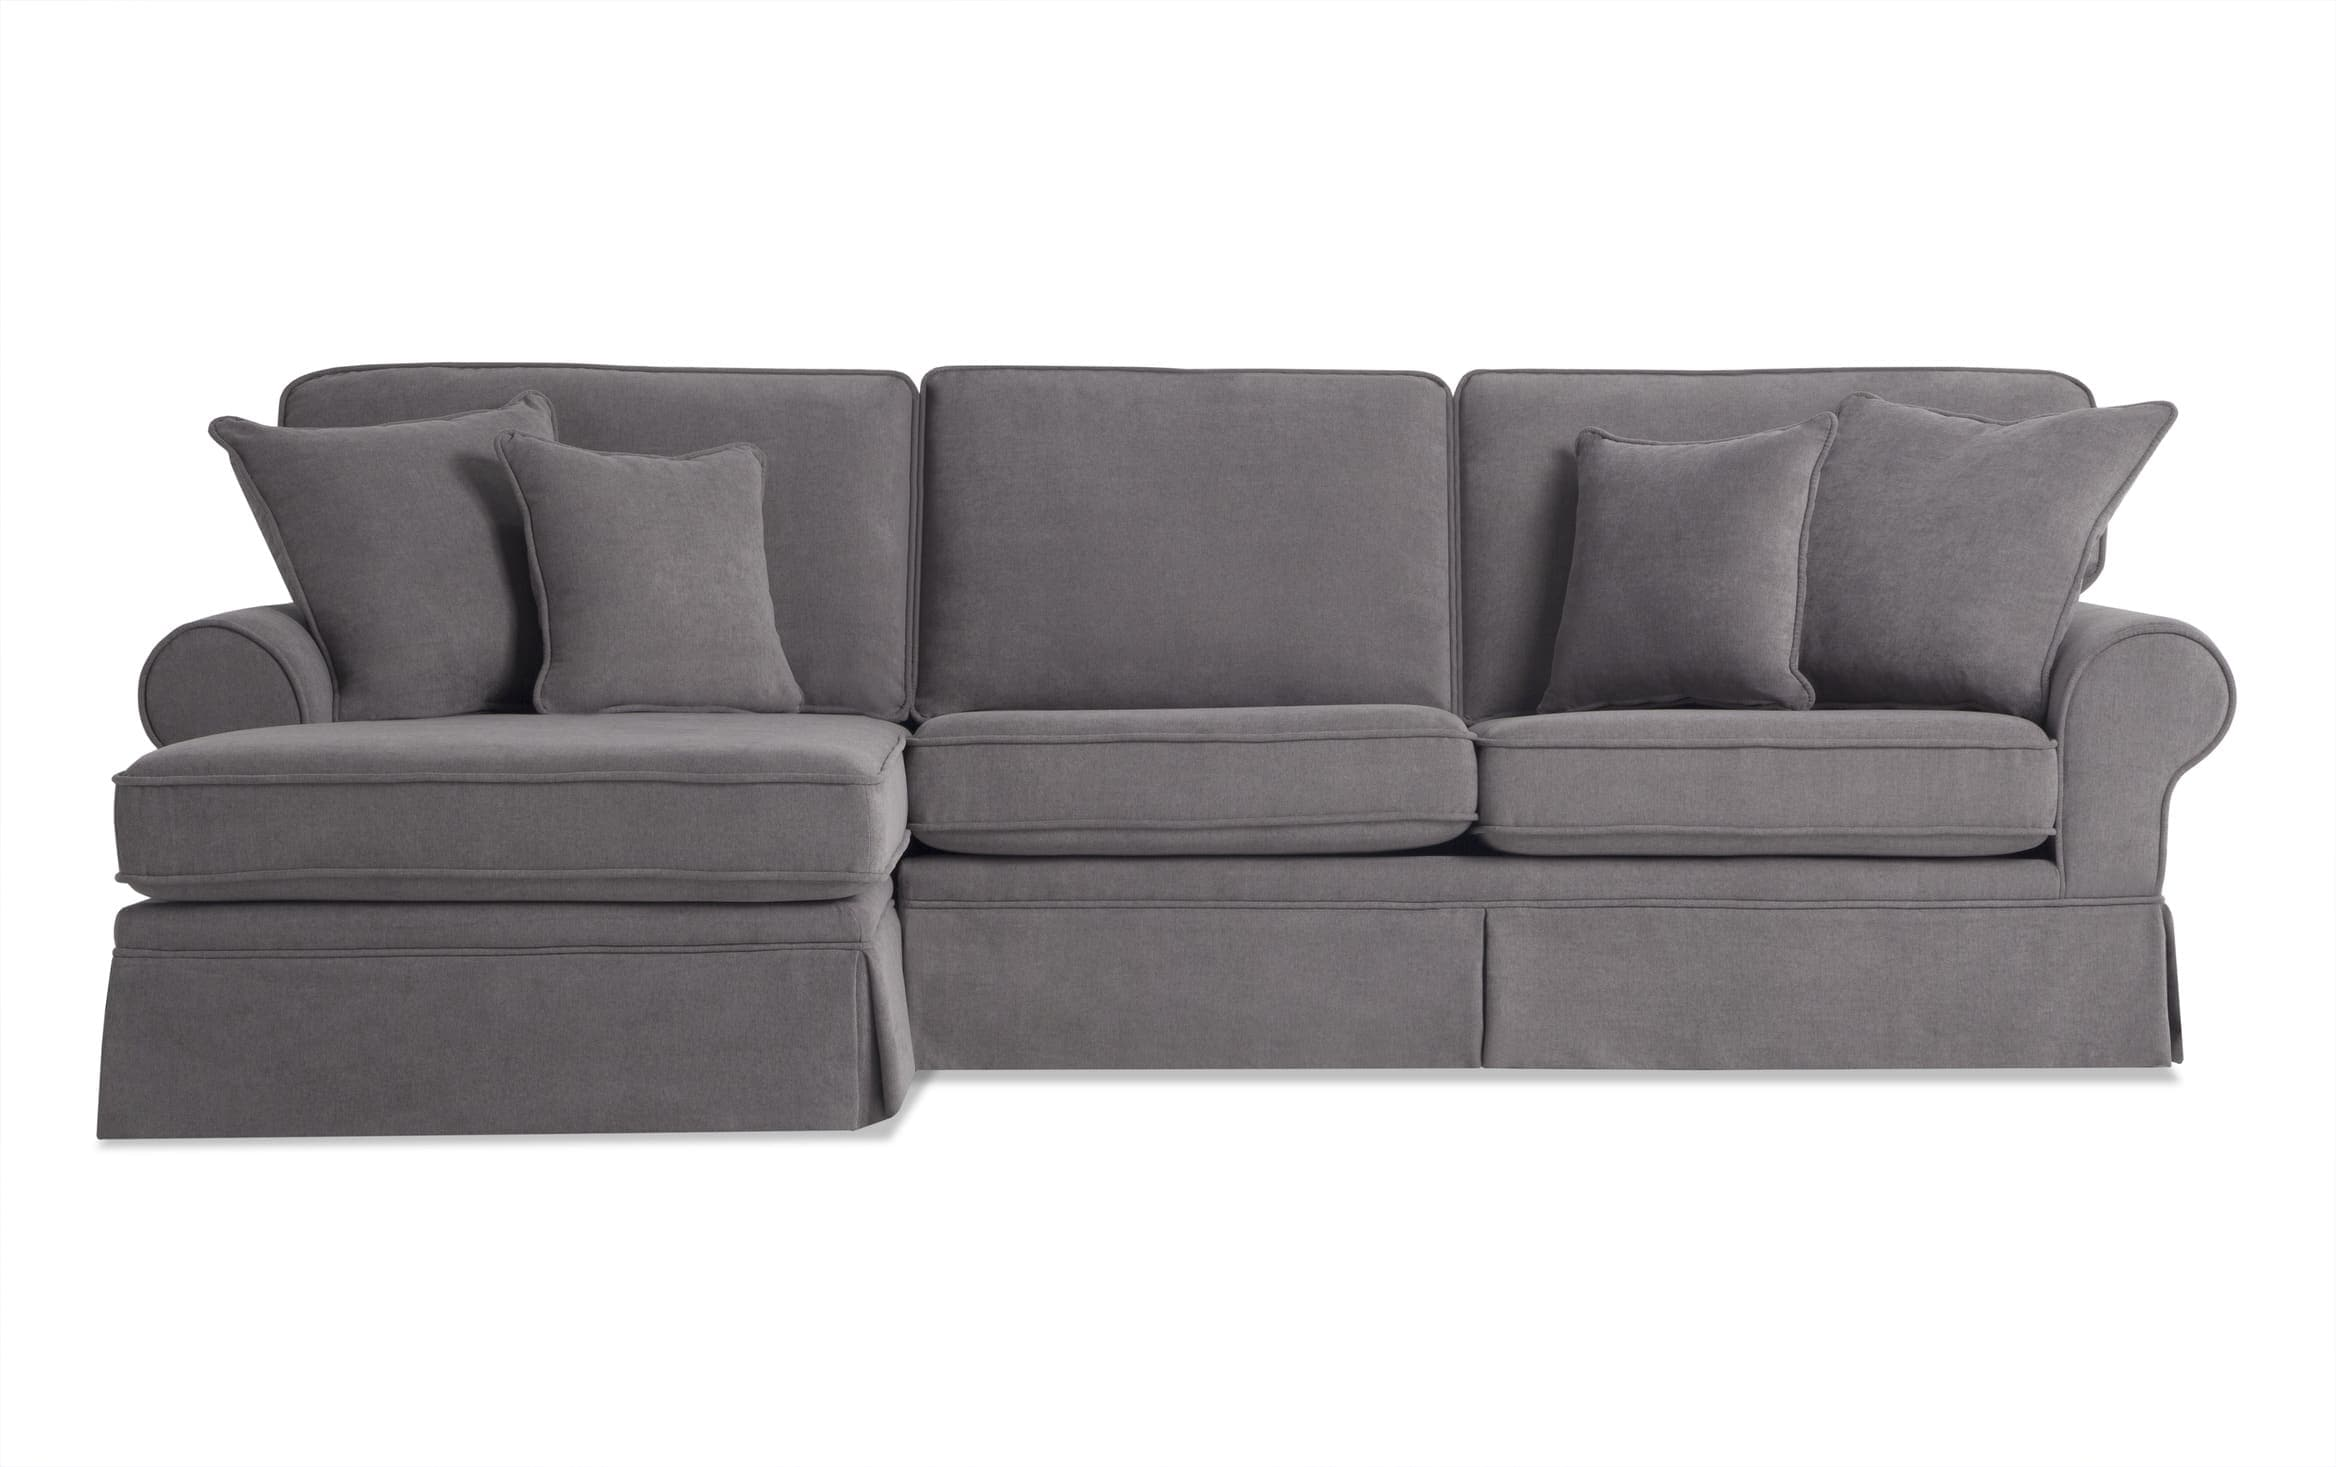 katie charcoal 2 piece right arm facing sectional